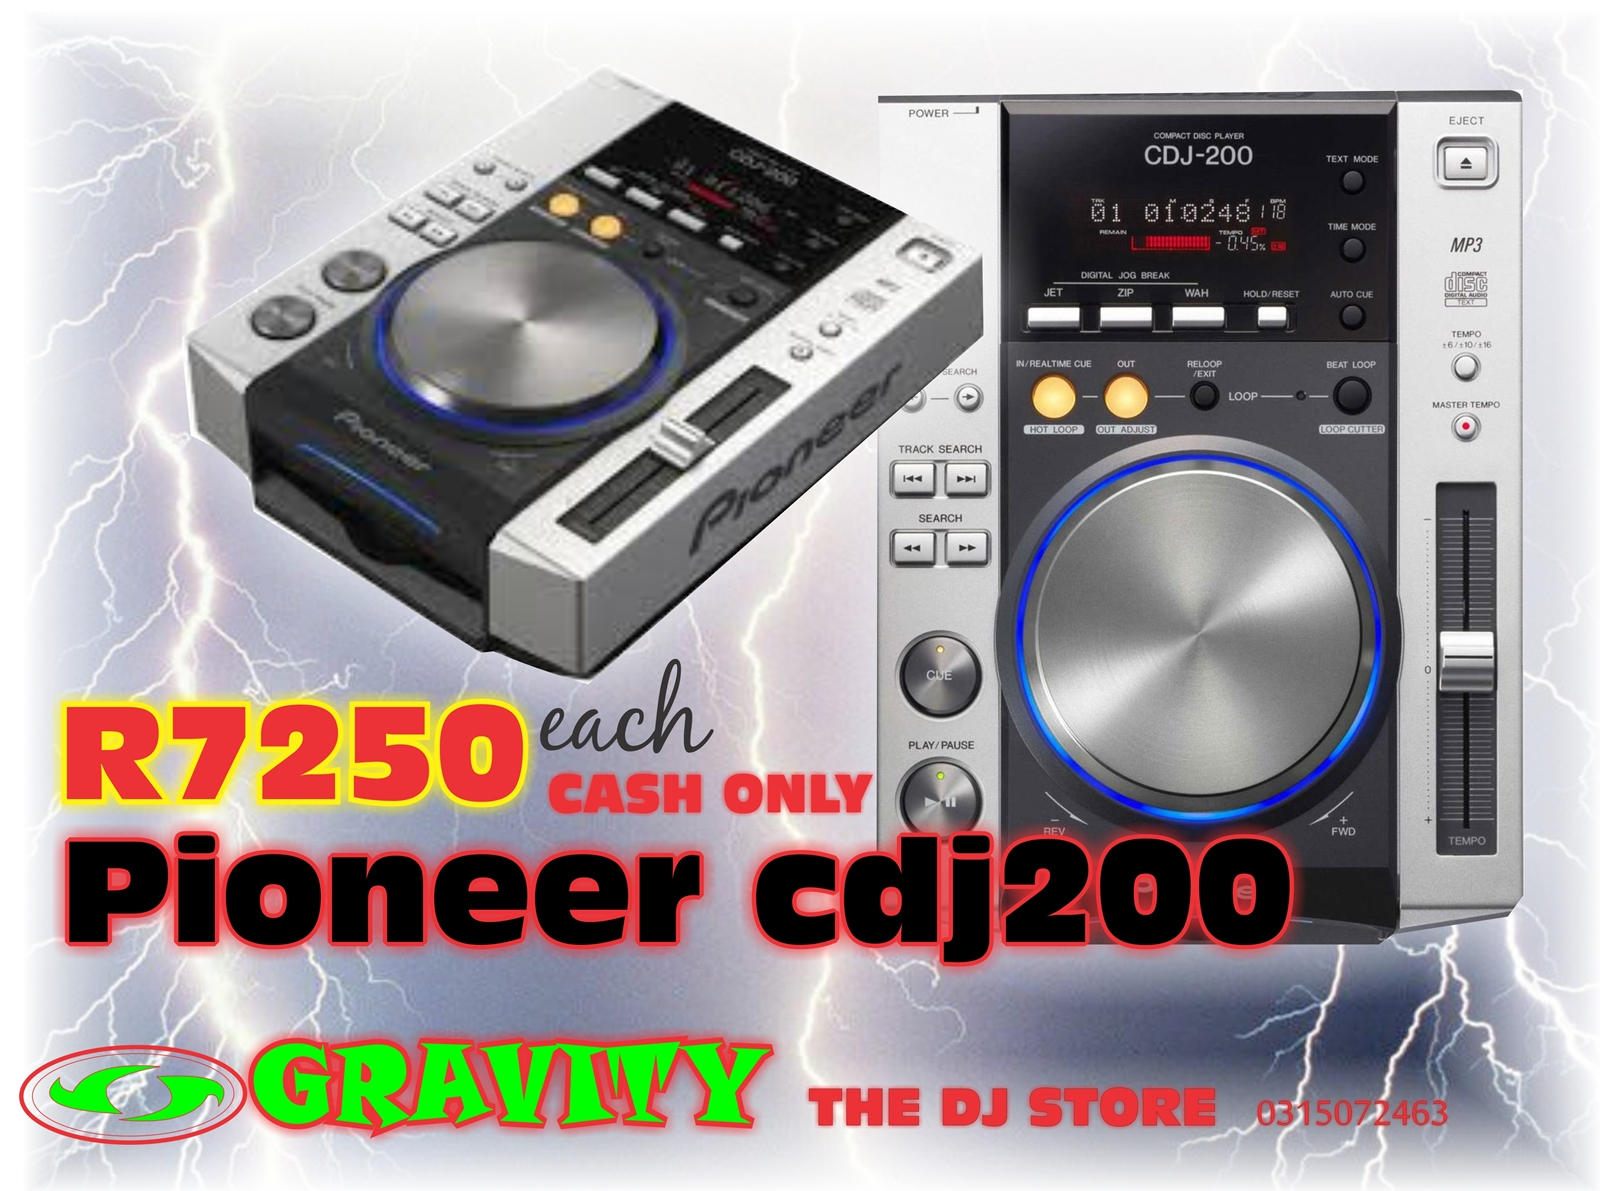 pioneer cdj 200 dj cd mp3 gravity dj store 0315072463 durban cheapest deal in pioneer cdj 200